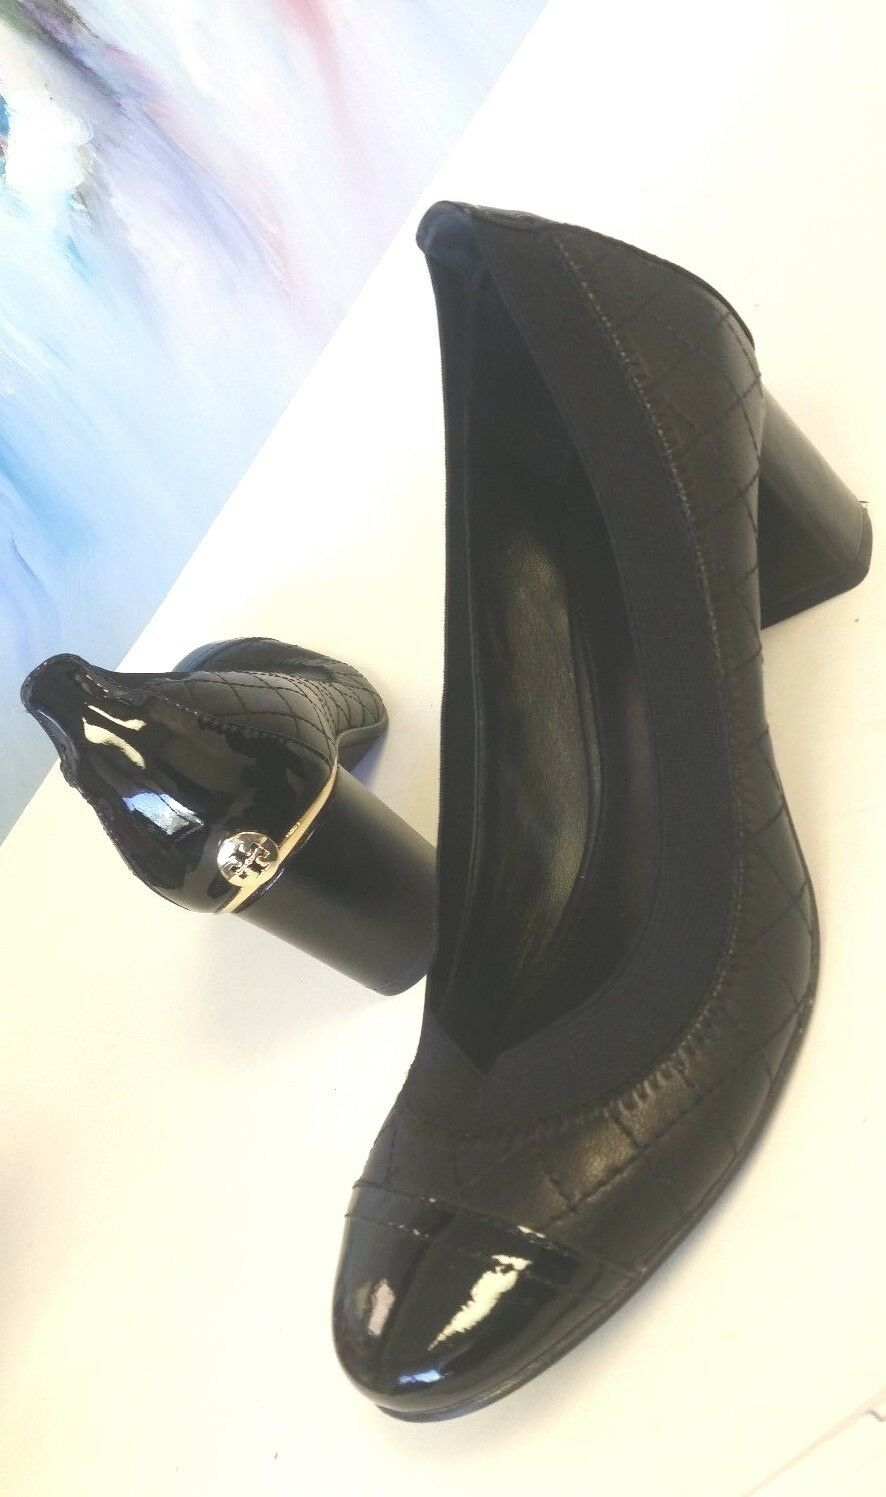 Tory Burch Carrie Women's Quilted Black Leather Cap Toe Pump Sz 7M EUC